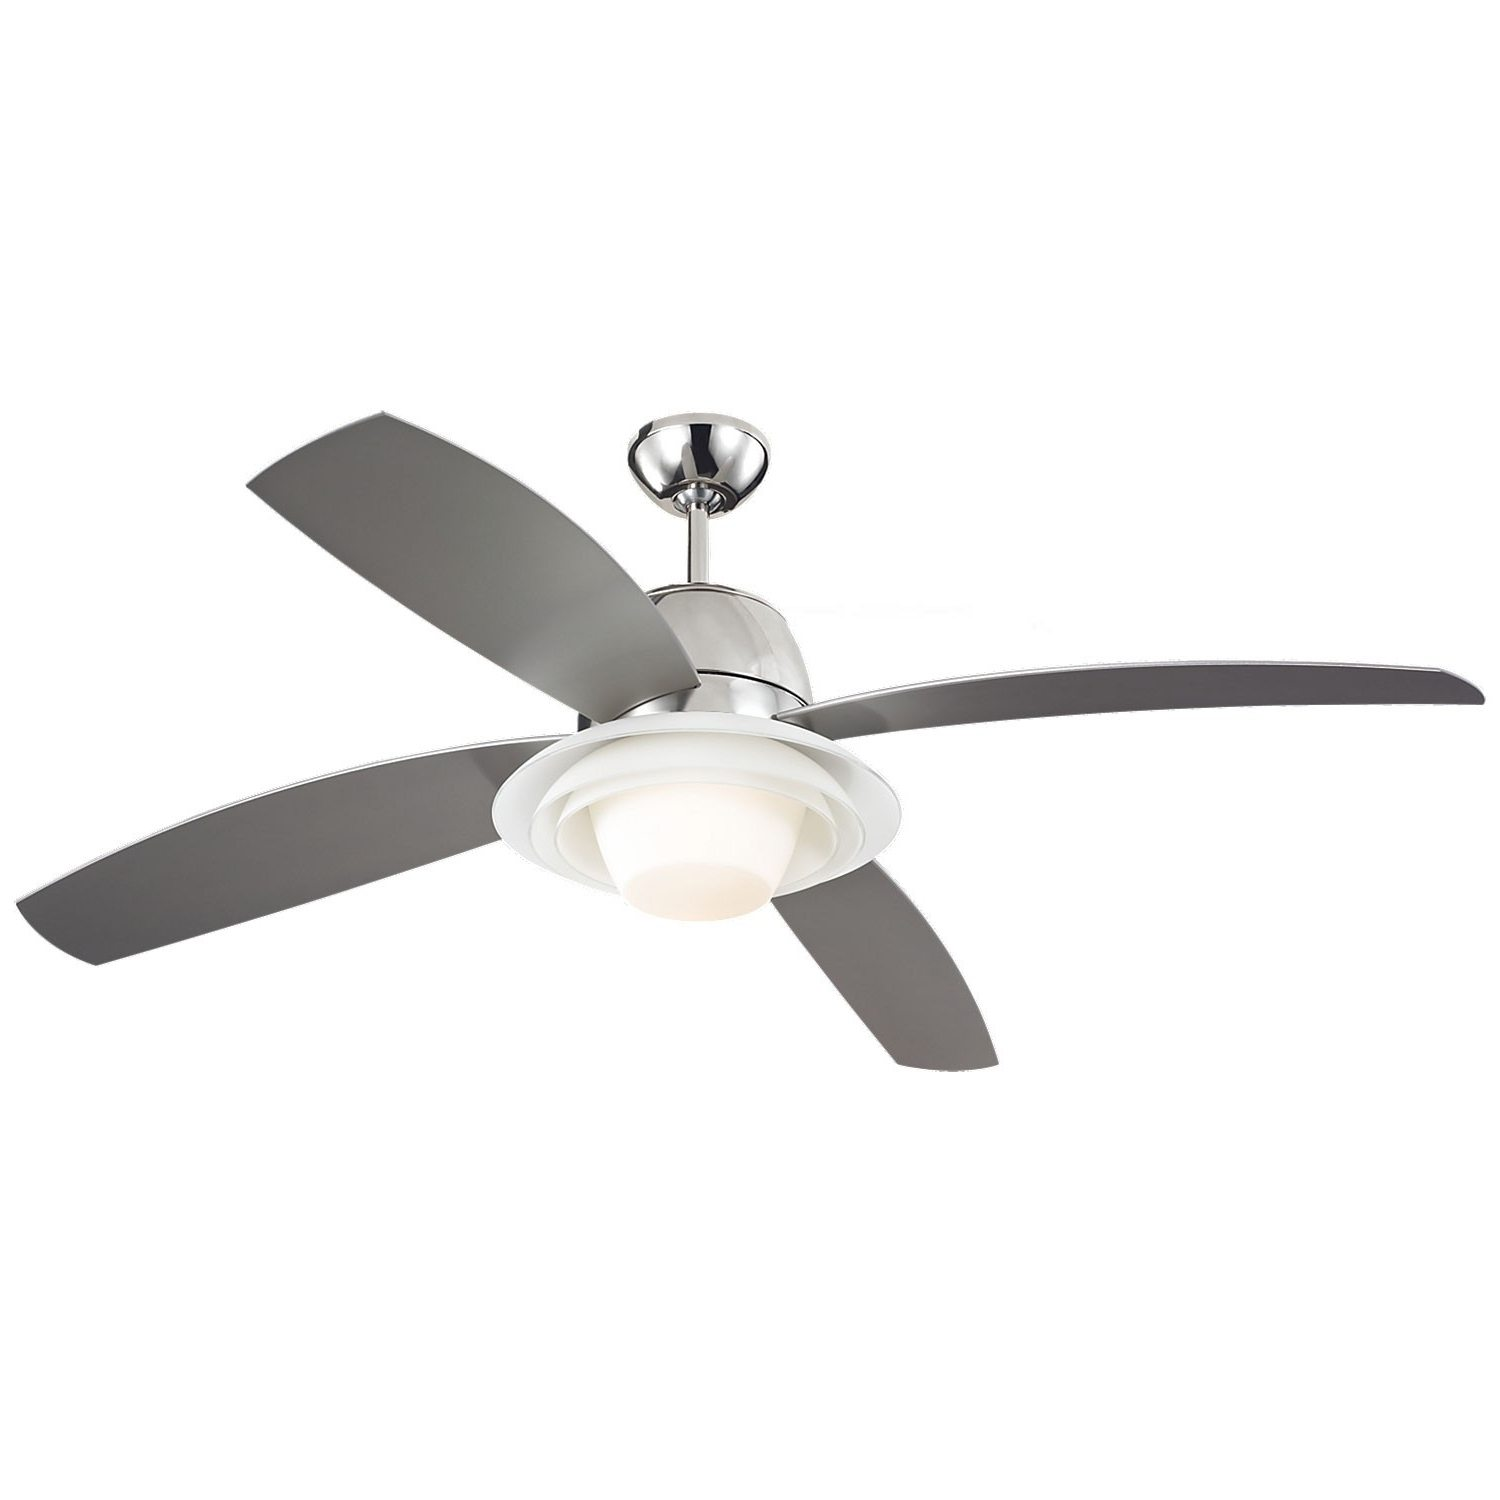 Swag ceiling fan best way to keep your home cool and save money